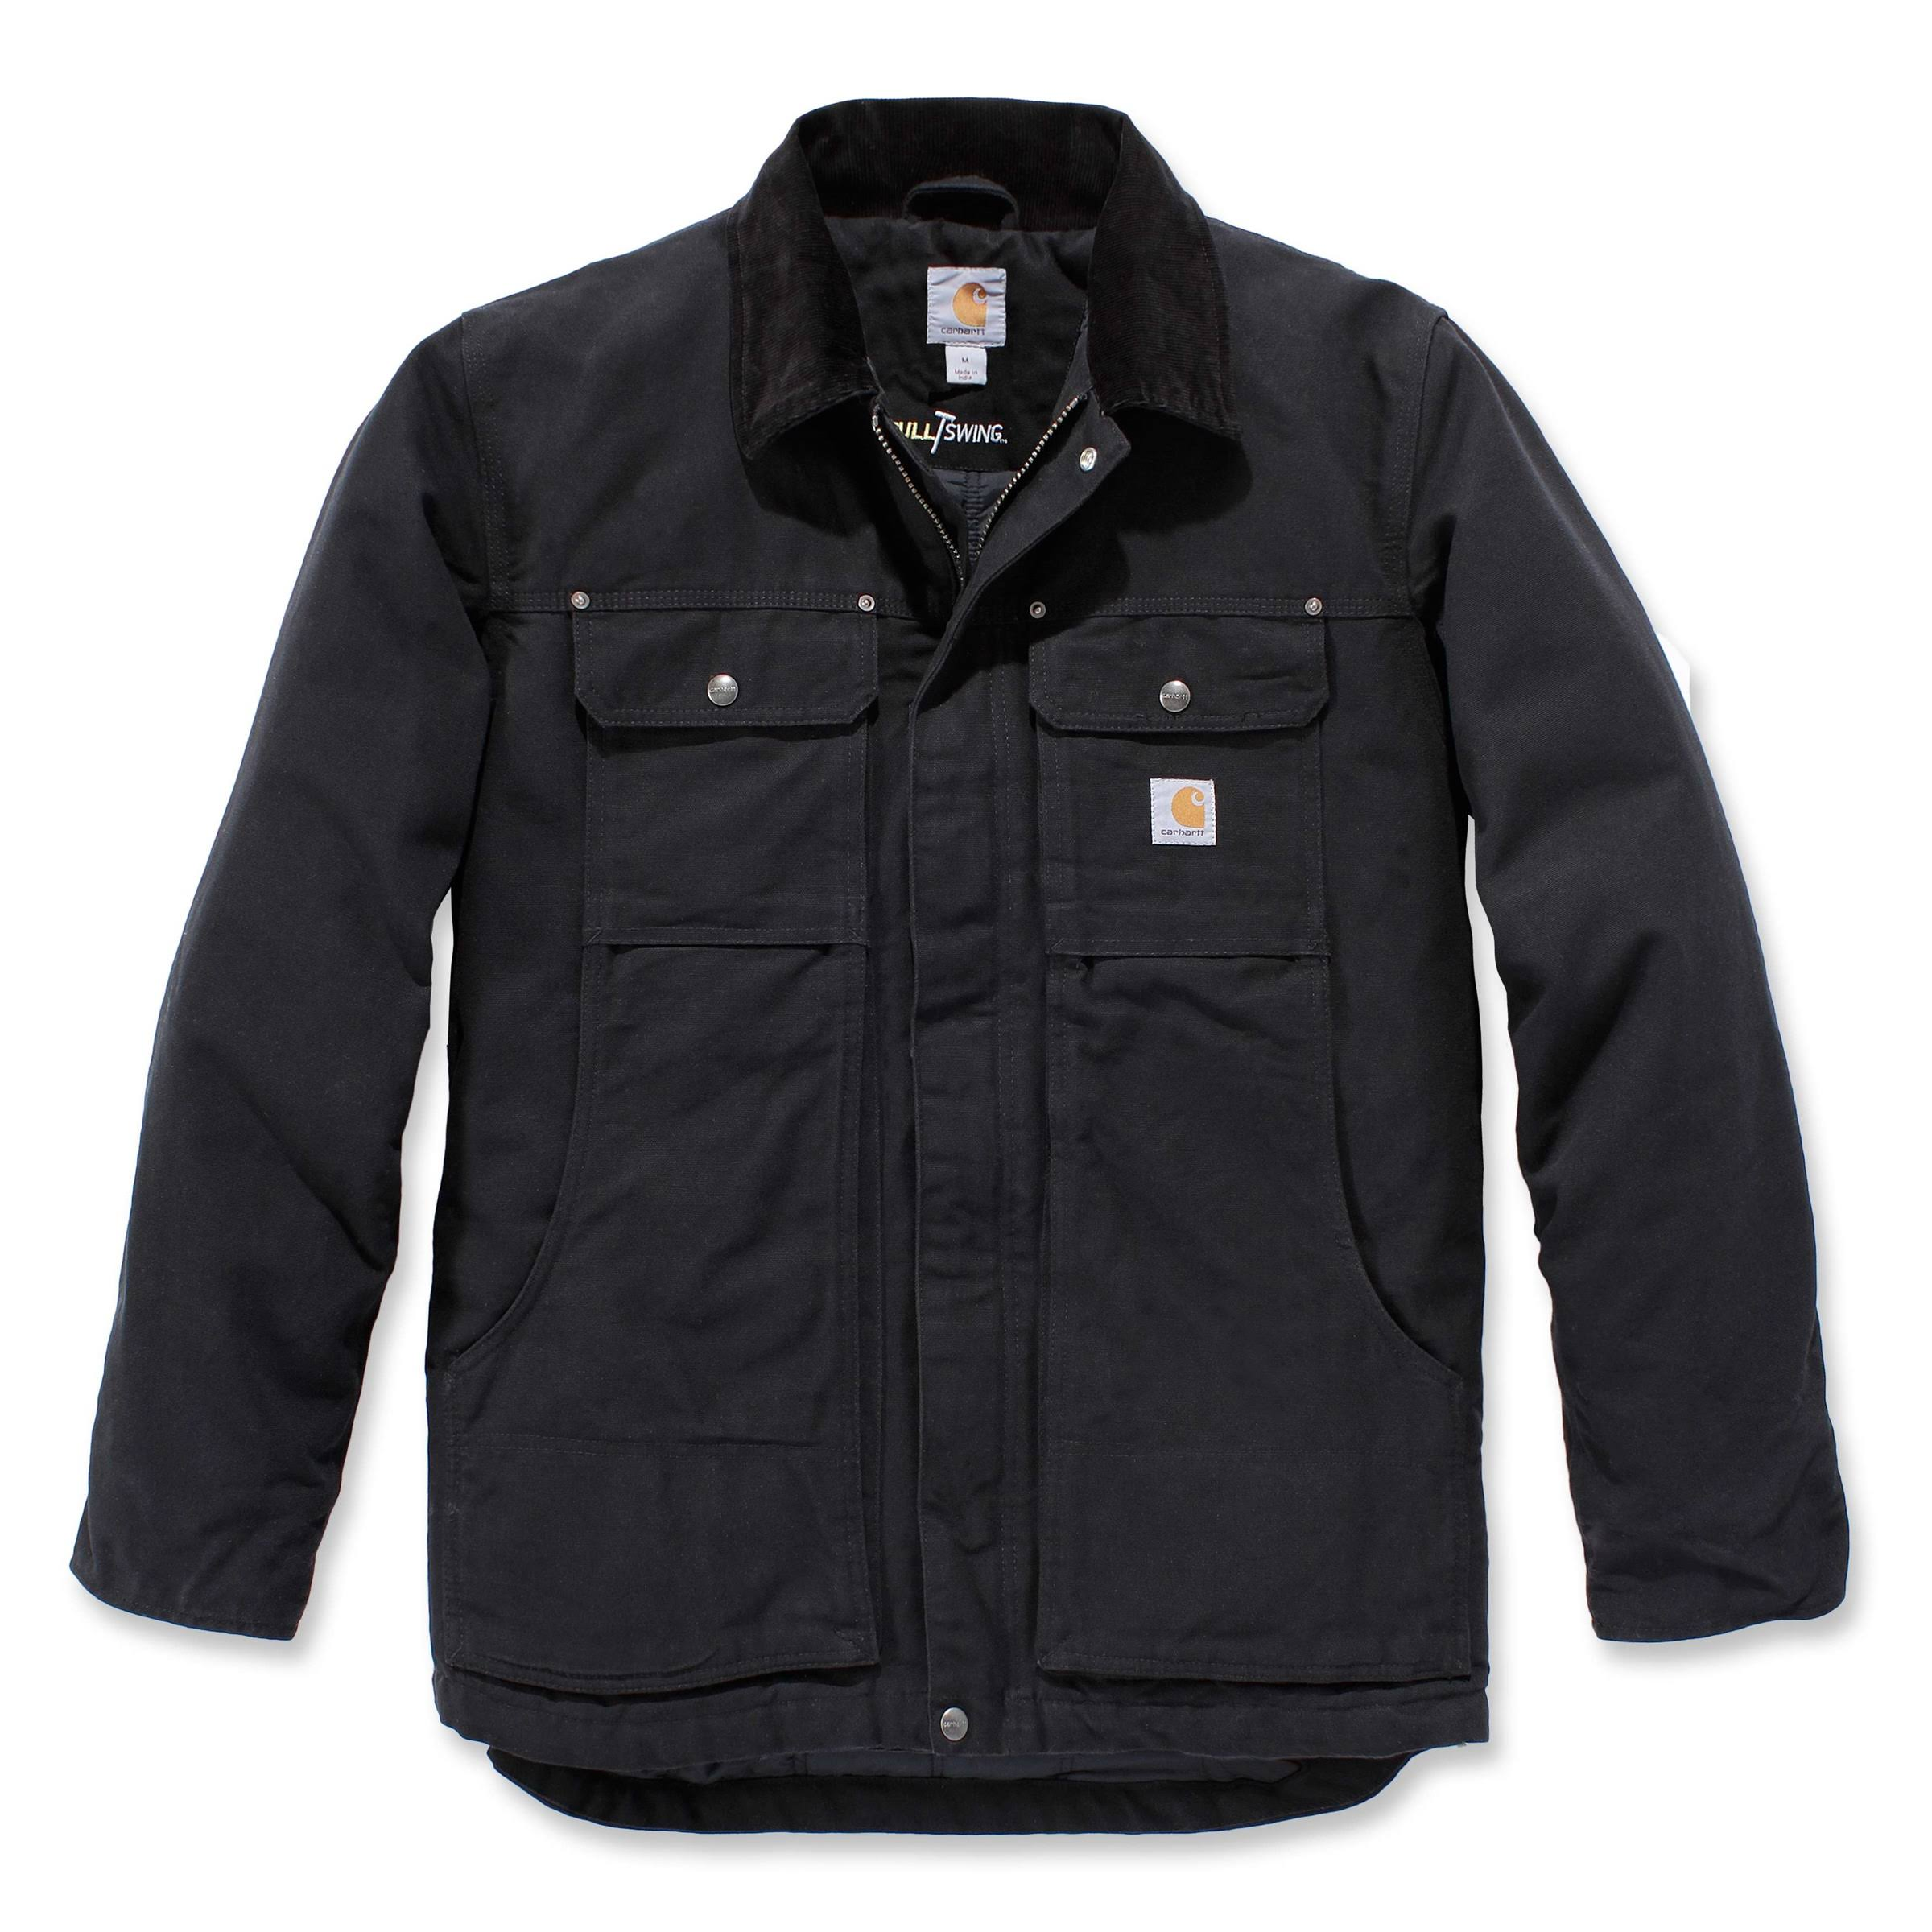 Carhartt Full Swing Traditional Coat, Men's Black